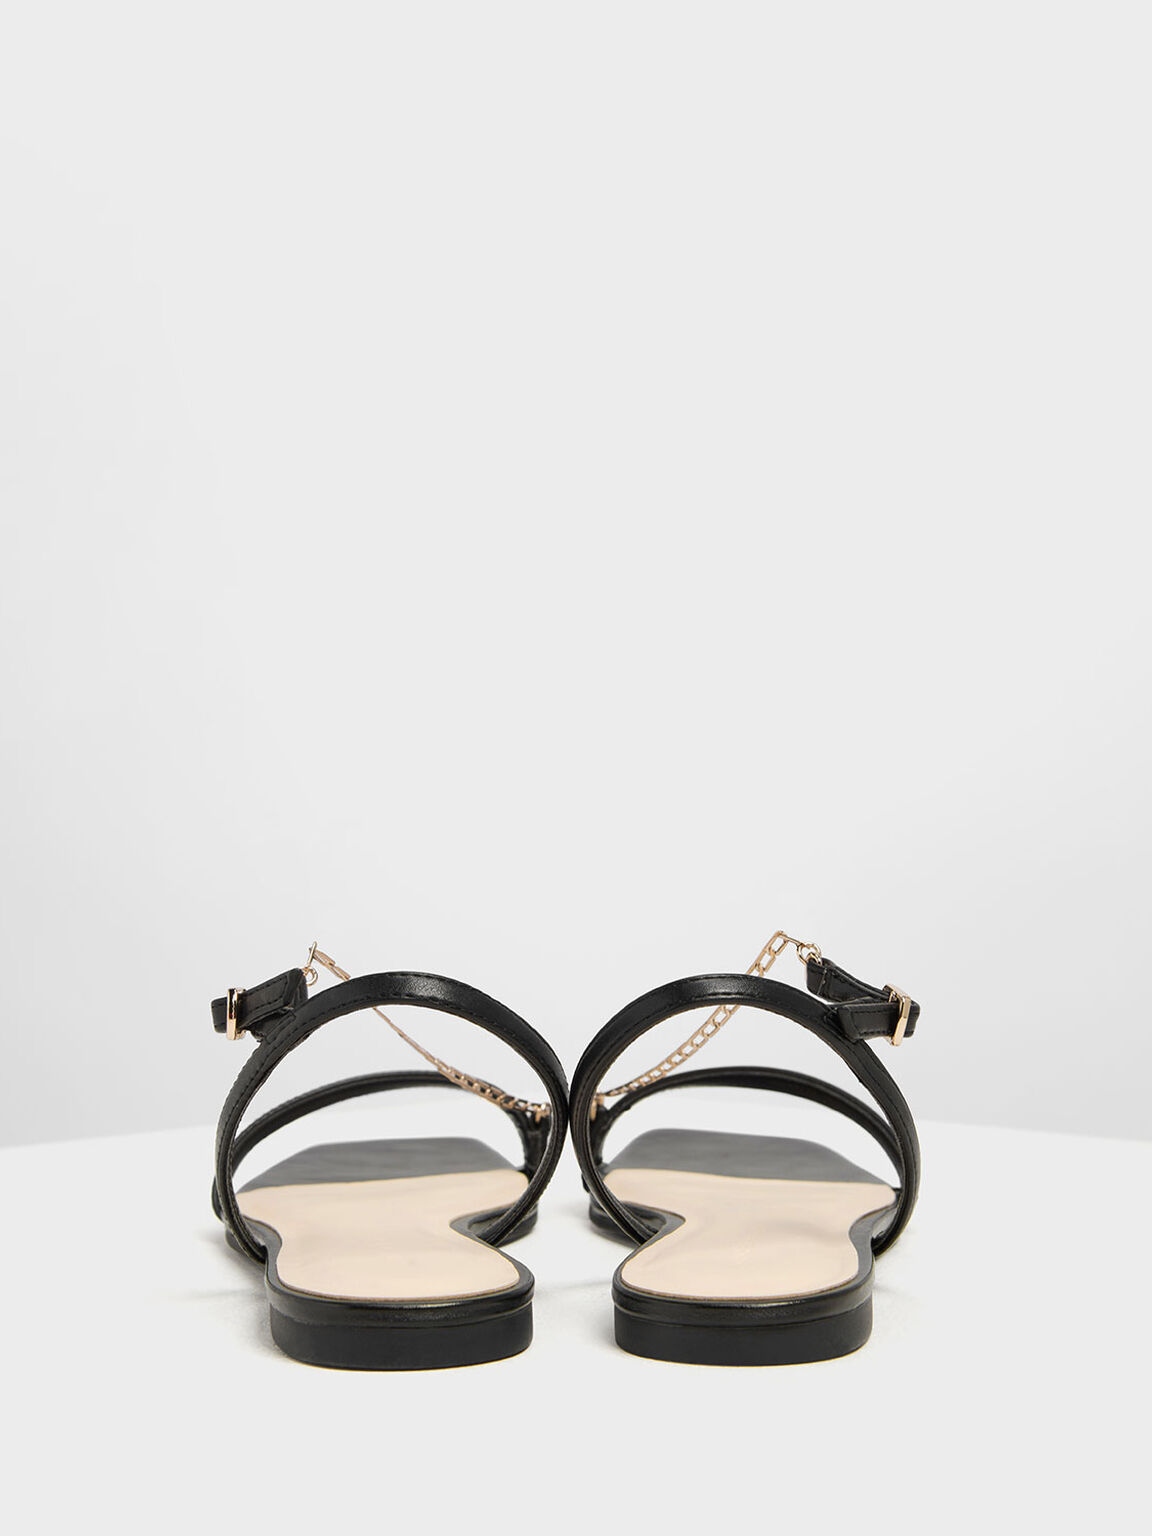 Chain Strap Sandals, Black, hi-res